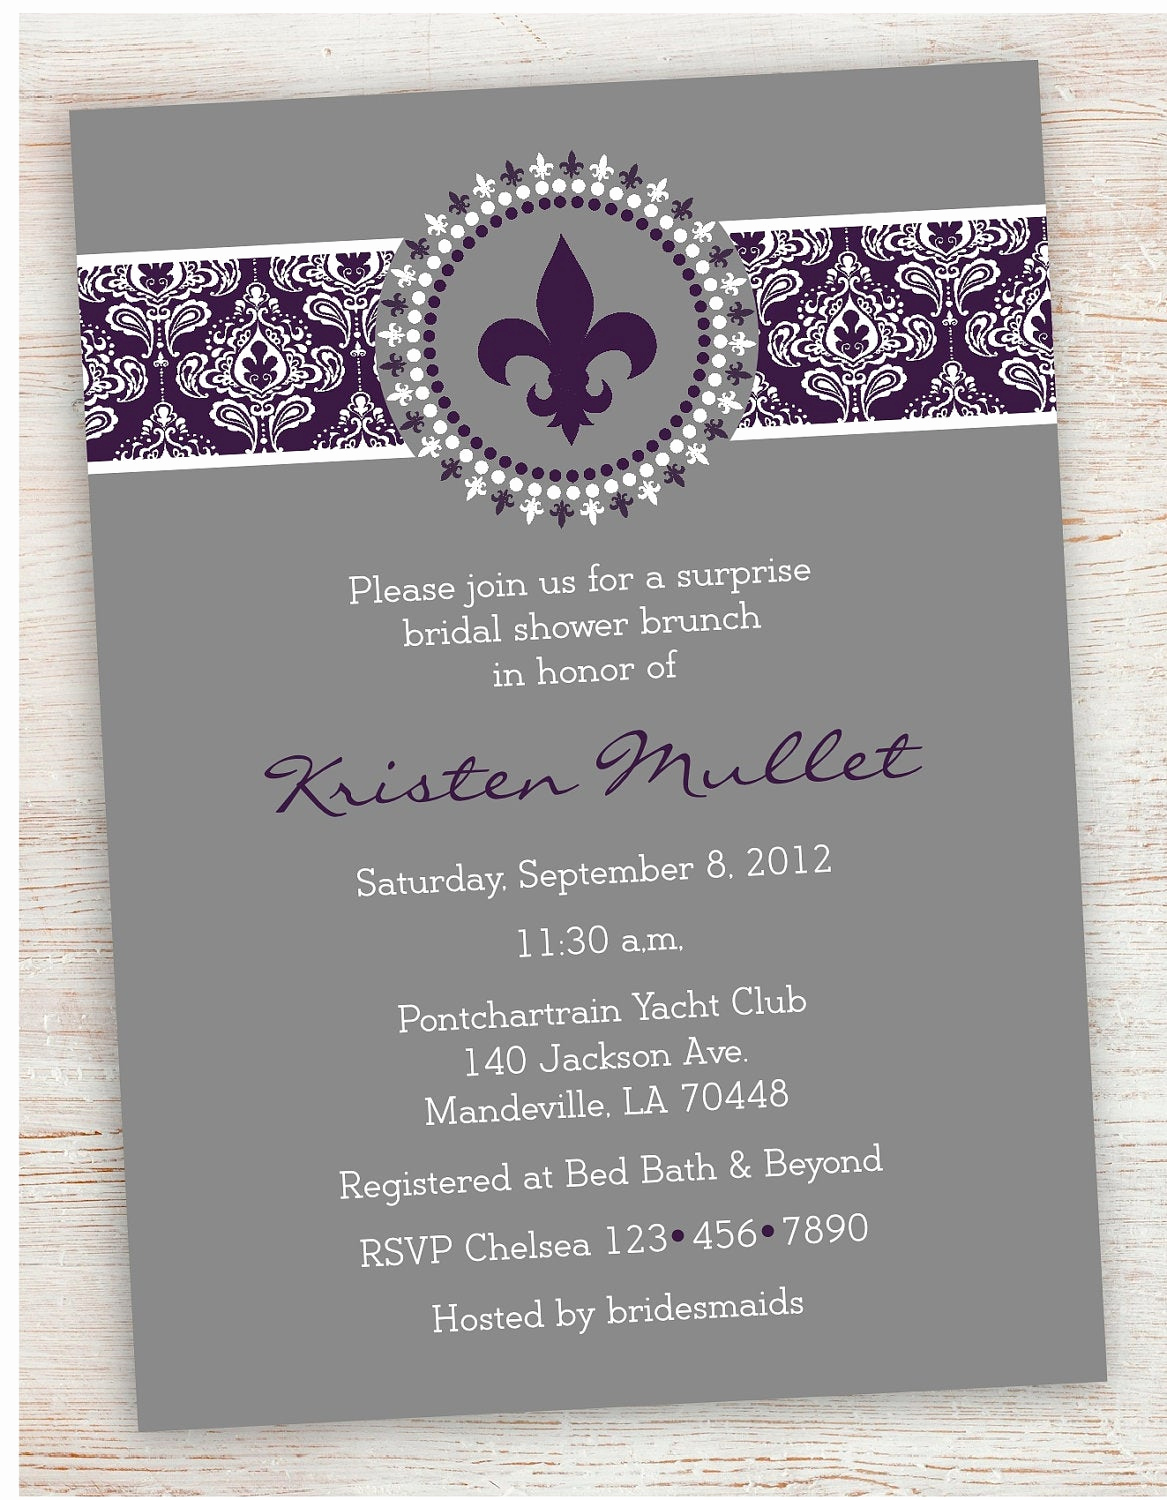 Fleur De Lis Wedding Invitation New 5x7 Fleur De Lis and Damask Bridal Shower Invitation by